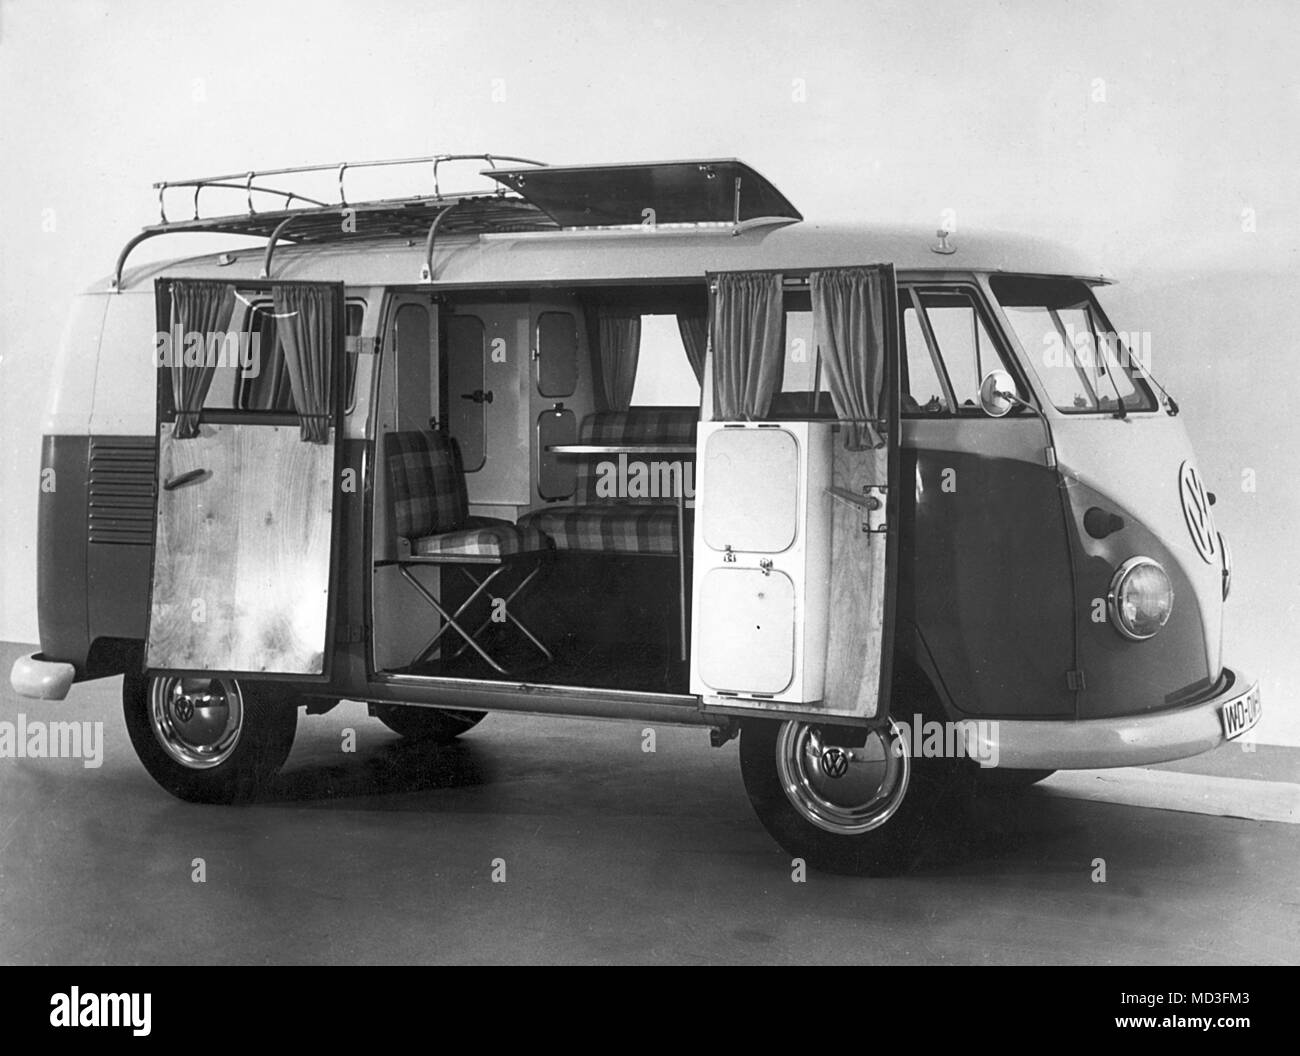 In 1961, the Volkswagen factory included the construction of a camping car in its program. The car will be built from 01.03.1961 in series. The basis is the VW transporter. Its original load space serves as a living room with a table and upholstered seats, which can be converted into a bedroom with just a few simple steps. It also includes a plywood wardrobe, a cooling box, cooking facilities and laundry facilities. An awning in width of the auricula creates additional space. For the accommodation of larger luggage it gives a Dachgepacktrager.     (c) dpa - Report     | usage worldwide - Stock Image